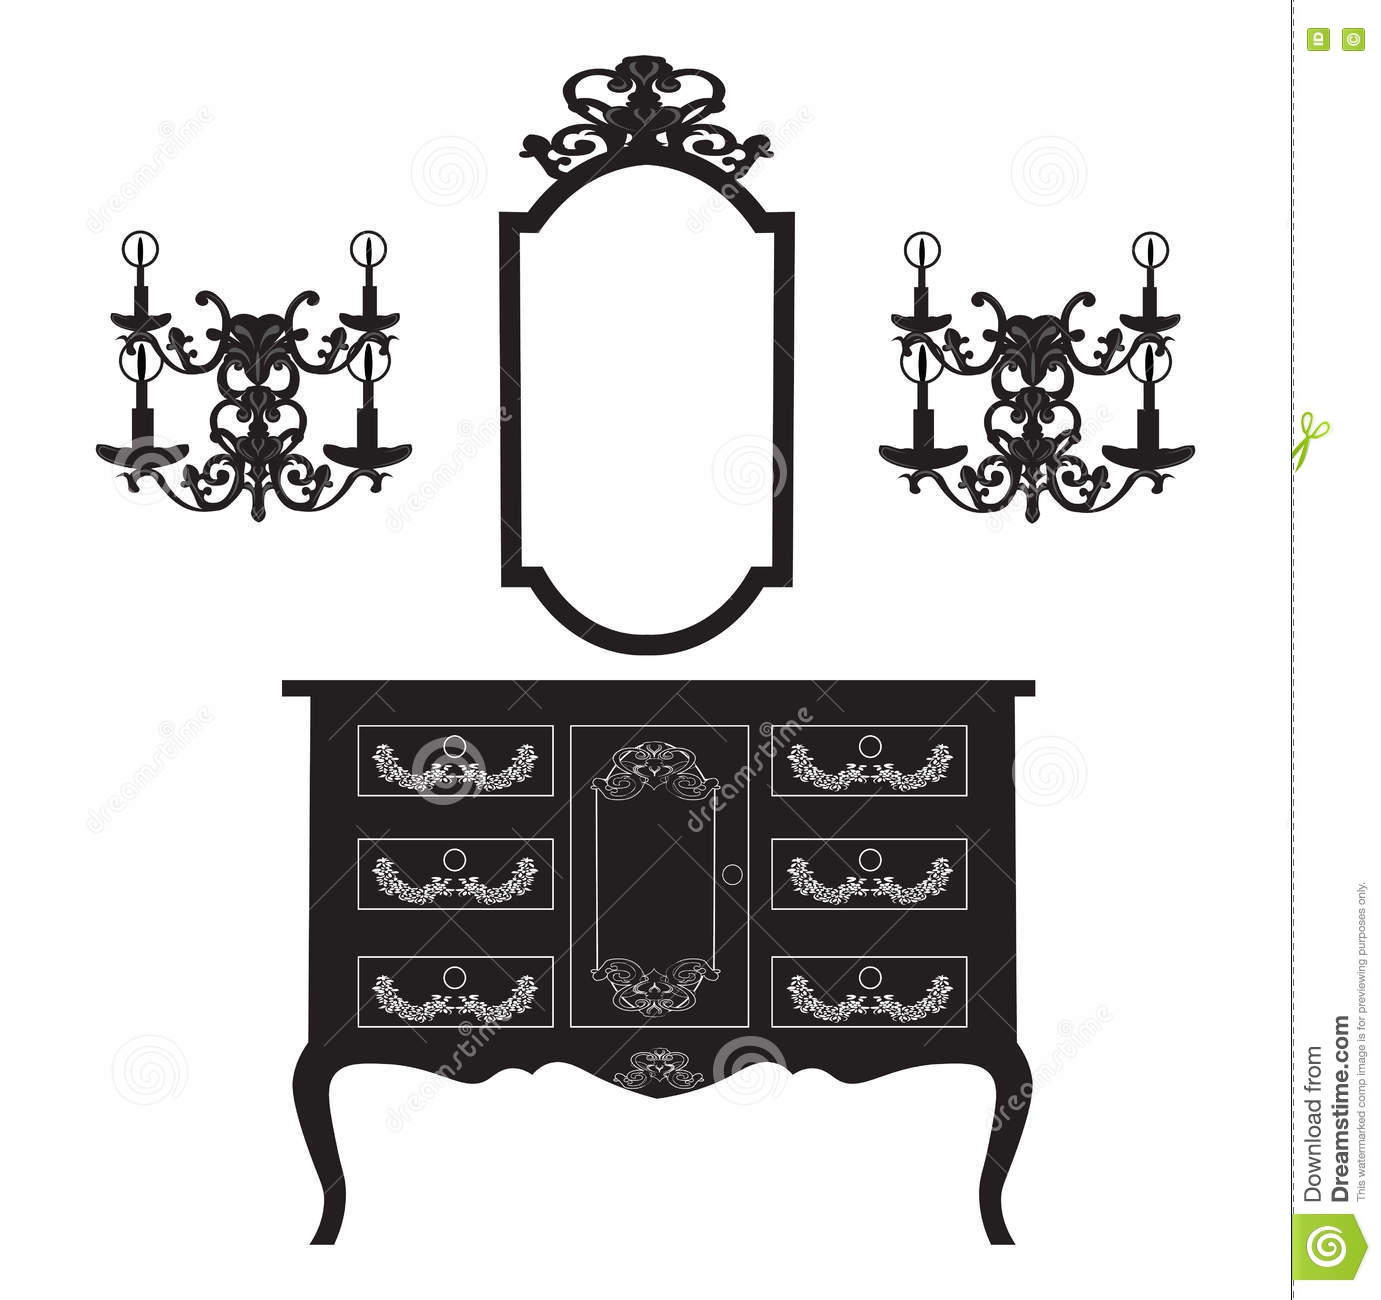 French Style Bathroom Mirror. Image Result For French Style Bathroom Mirror